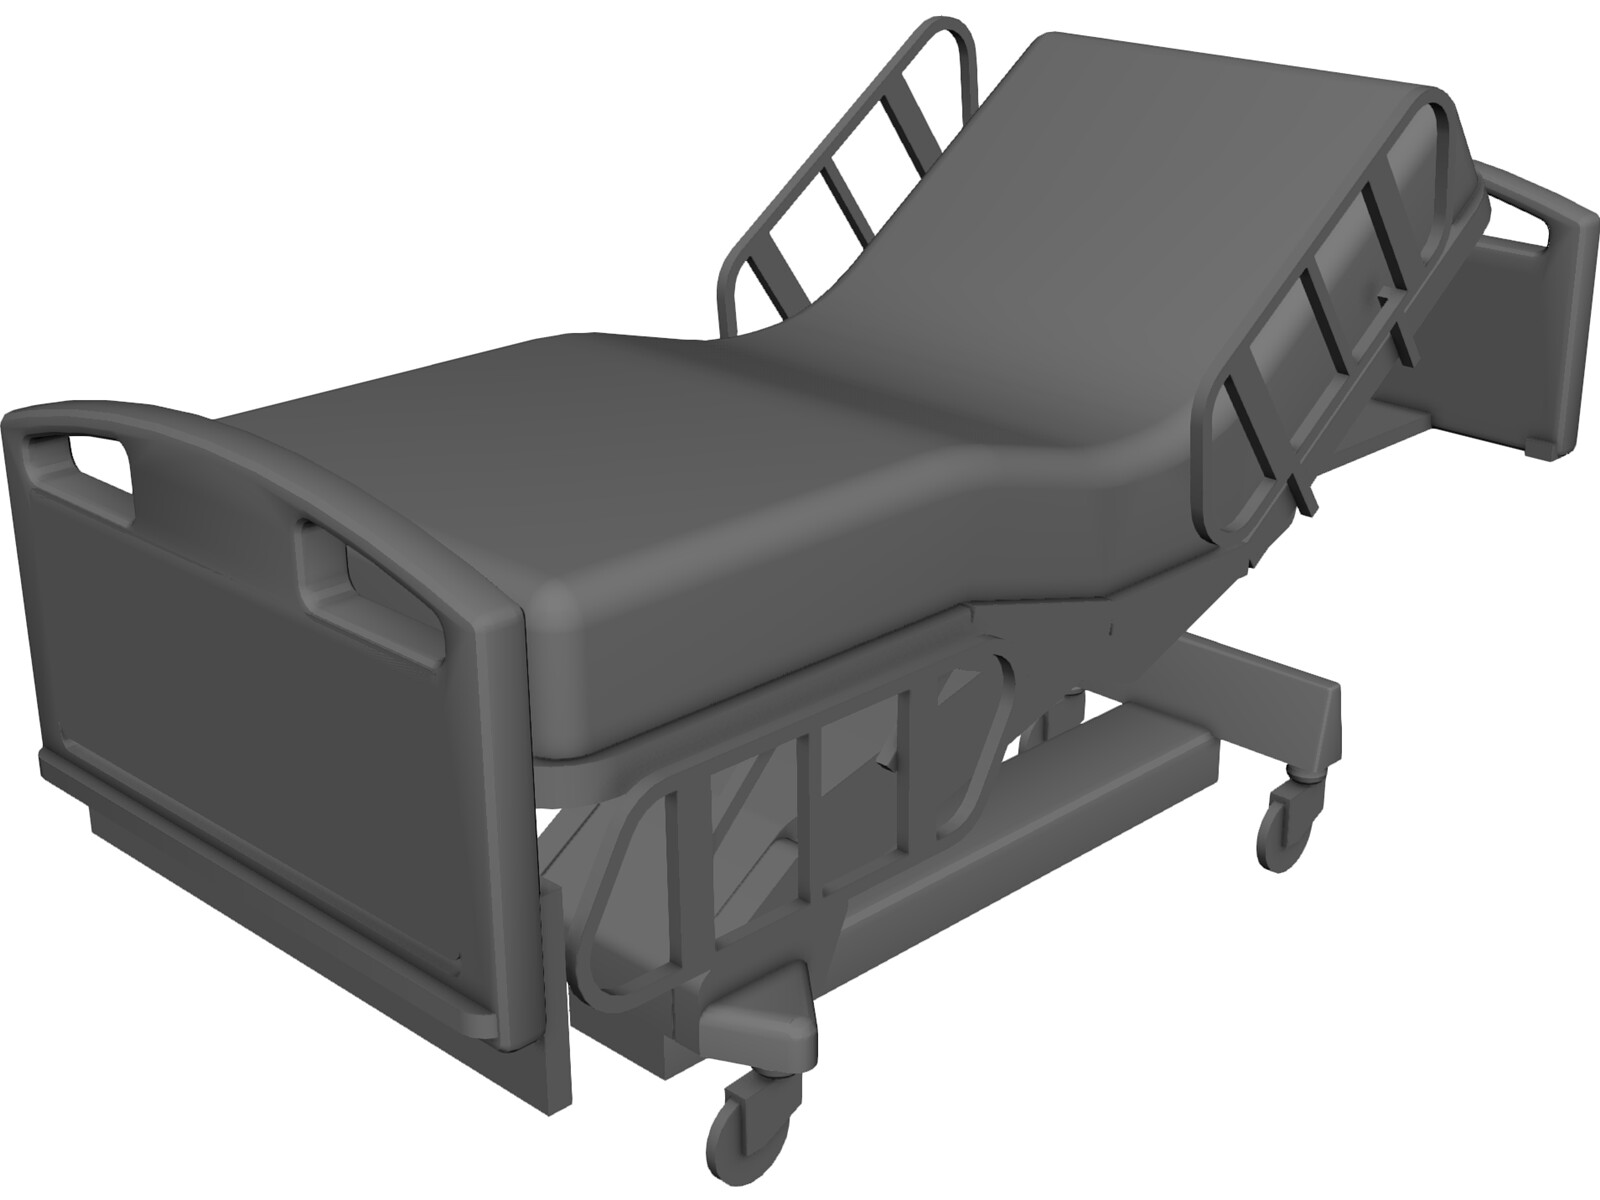 Bed Hospital Incline